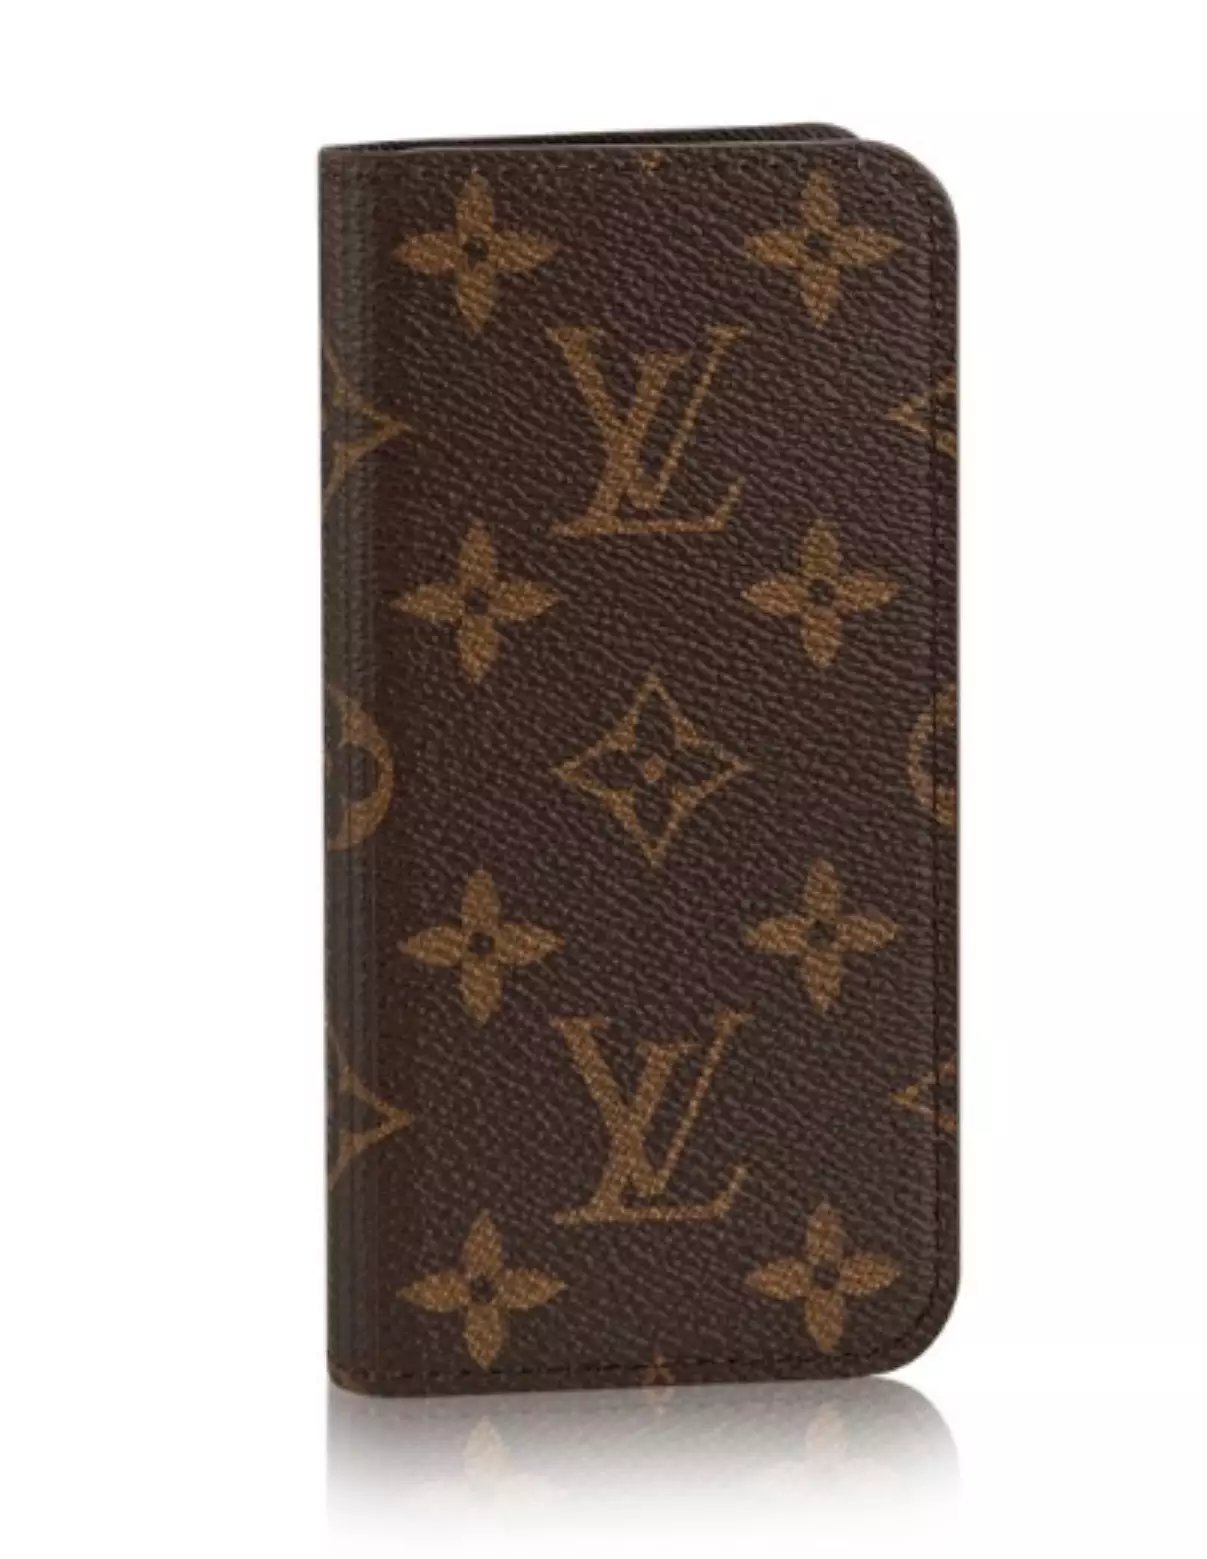 original iphone hülle iphone hüllen Louis Vuitton iphone7 Plus hülle iphpne 6 partner hüllen iphone silikonhülle 7lbst gestalten bild 6 iphone 7 Plus hutztasche iphone 6 neu